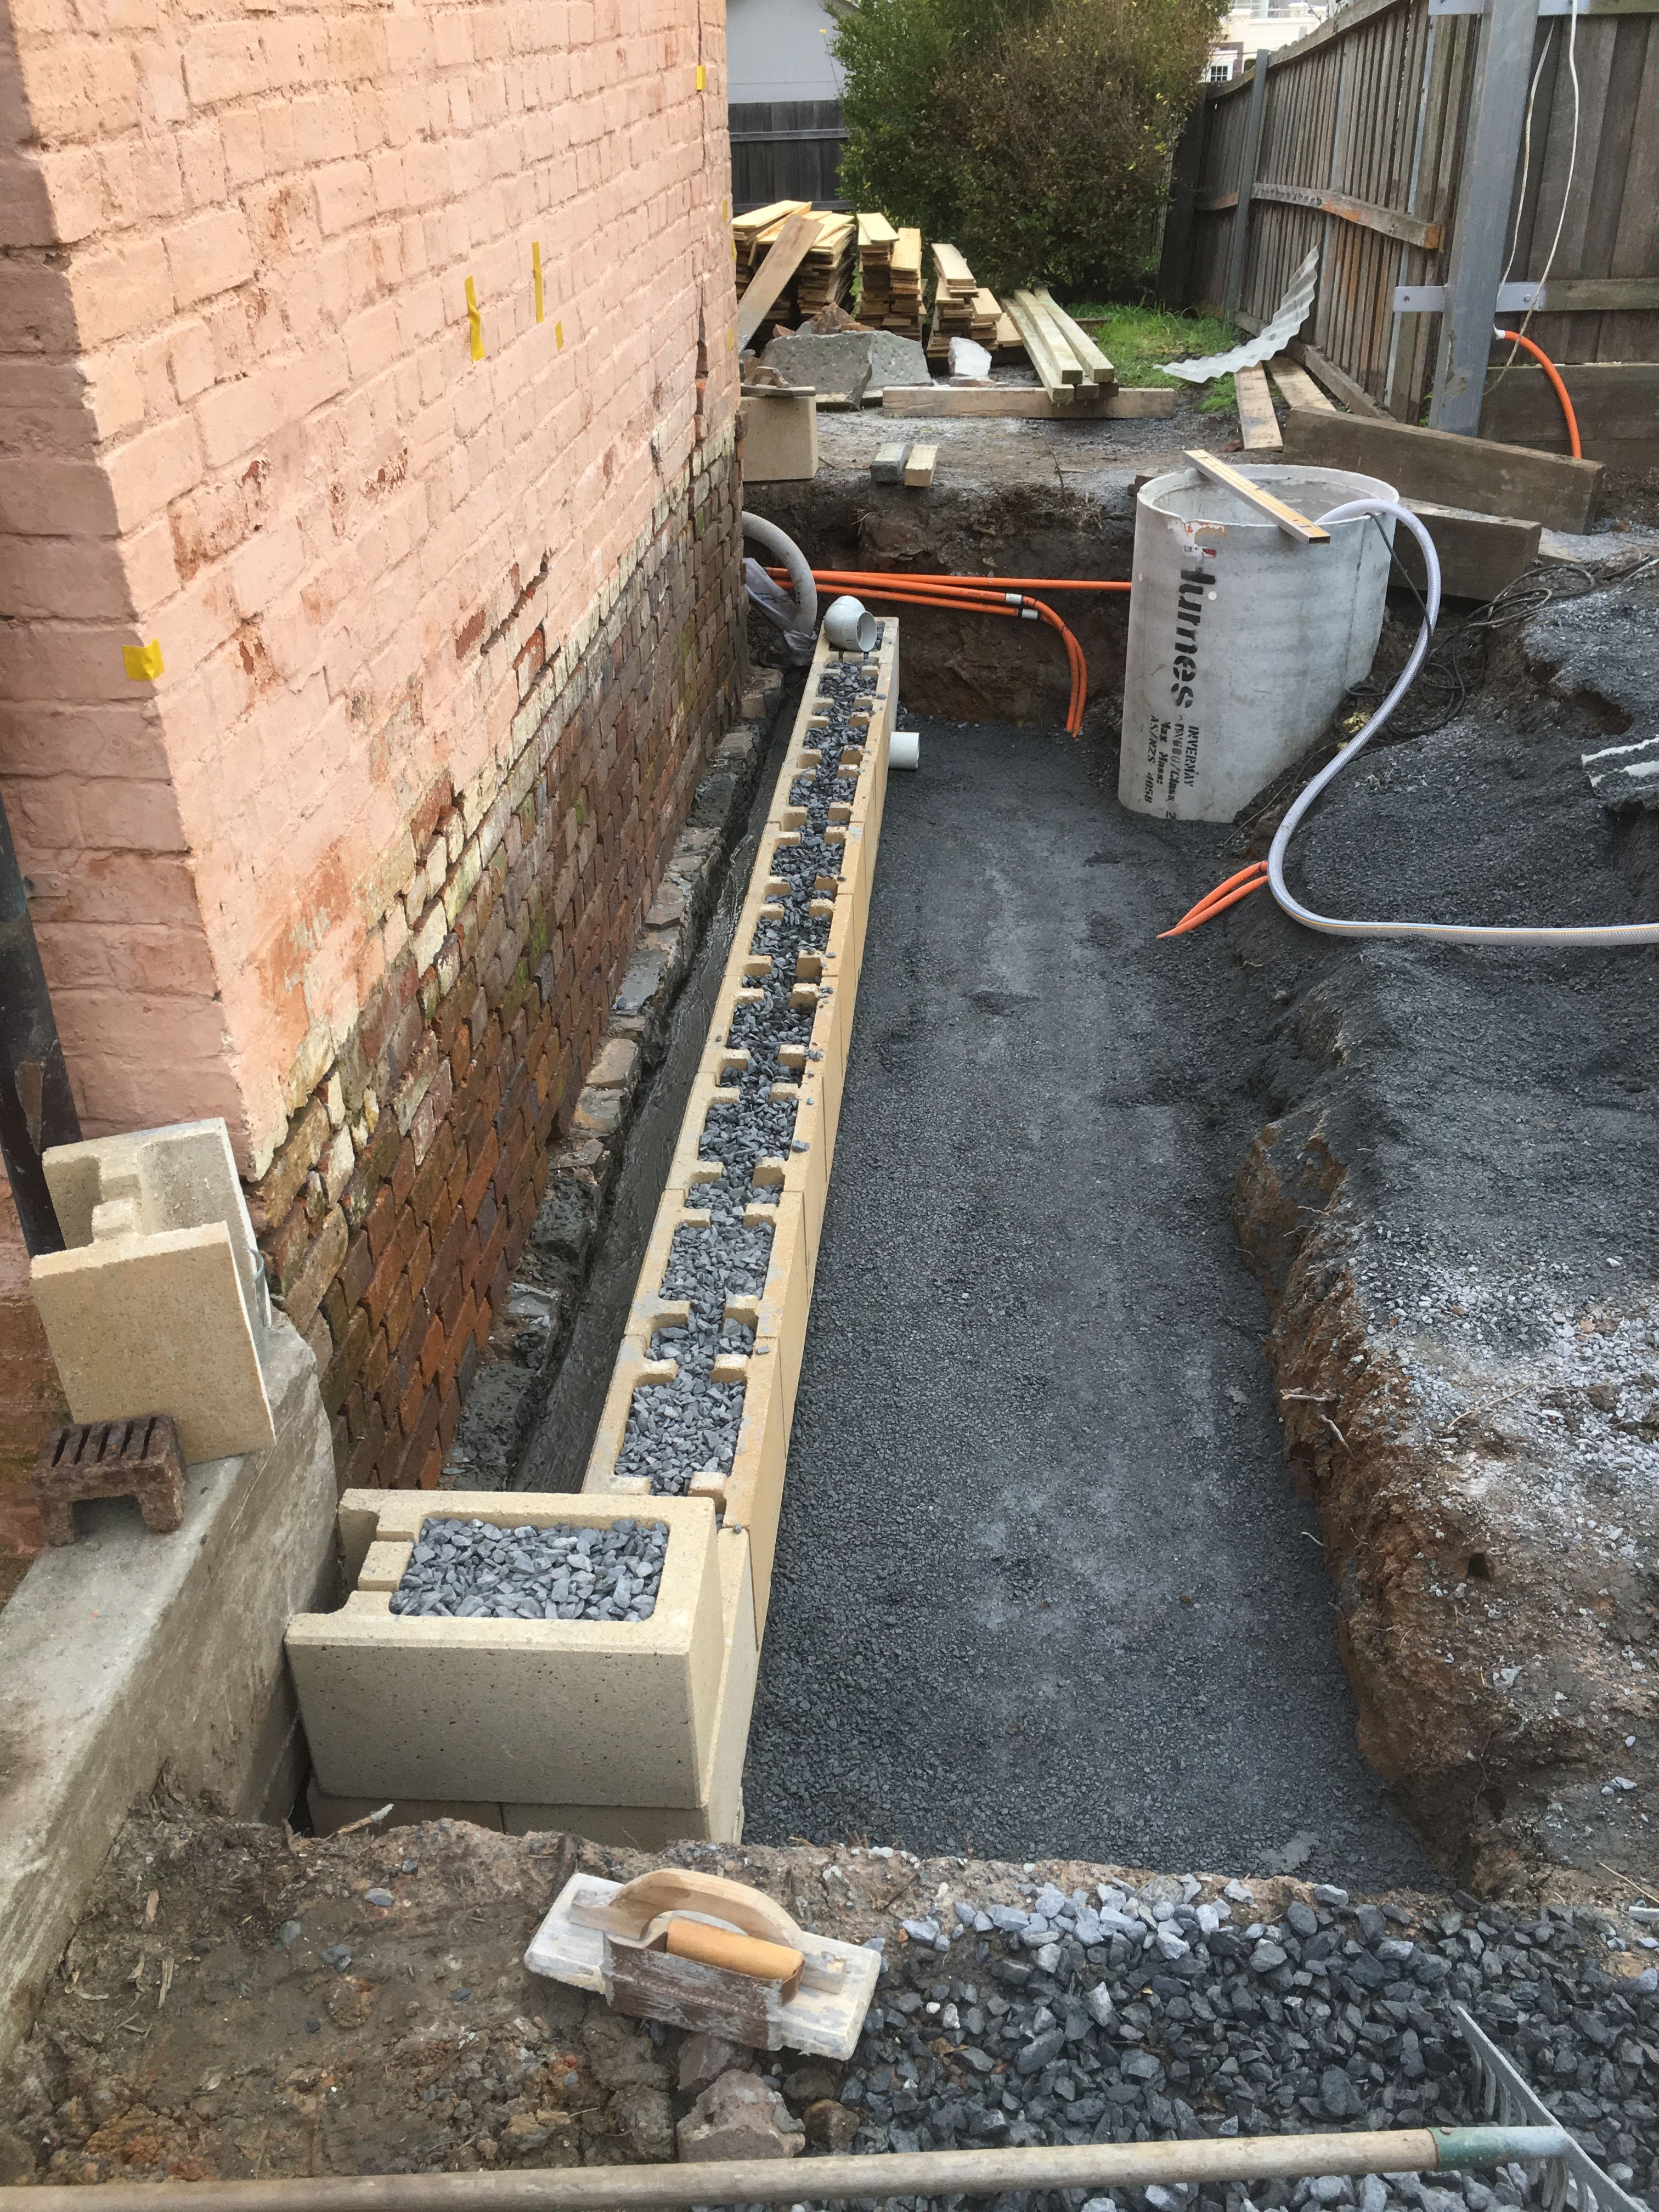 Property Drainage Works Retaining Wall Under Construction To Allow An Air Gap Between The Foundations And Earth Fill